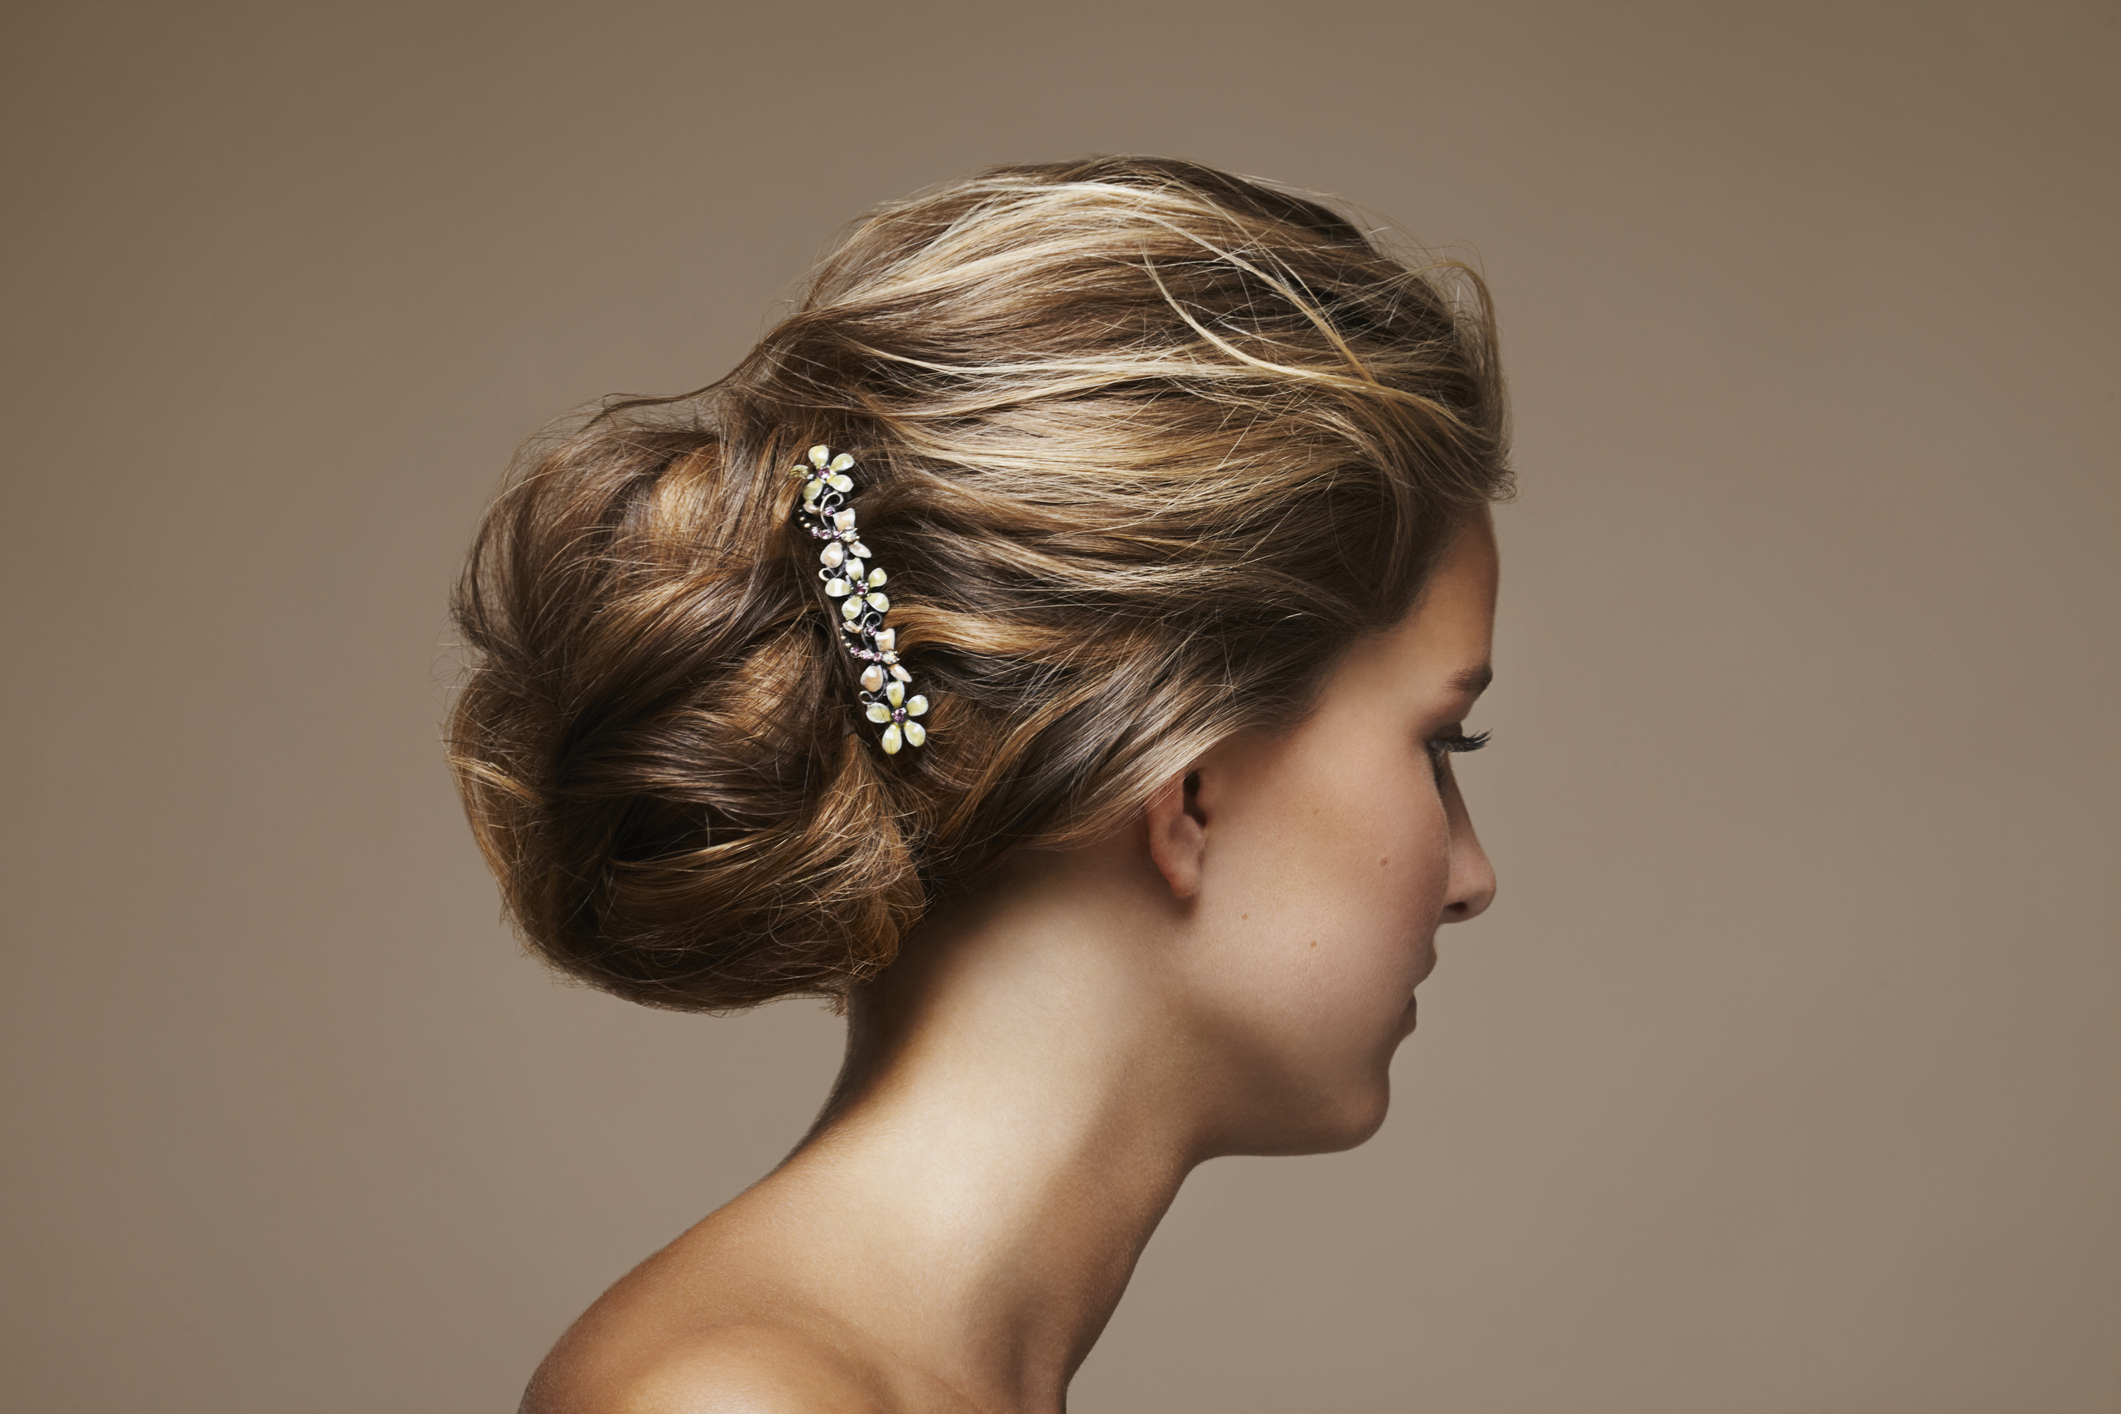 woman with chignon